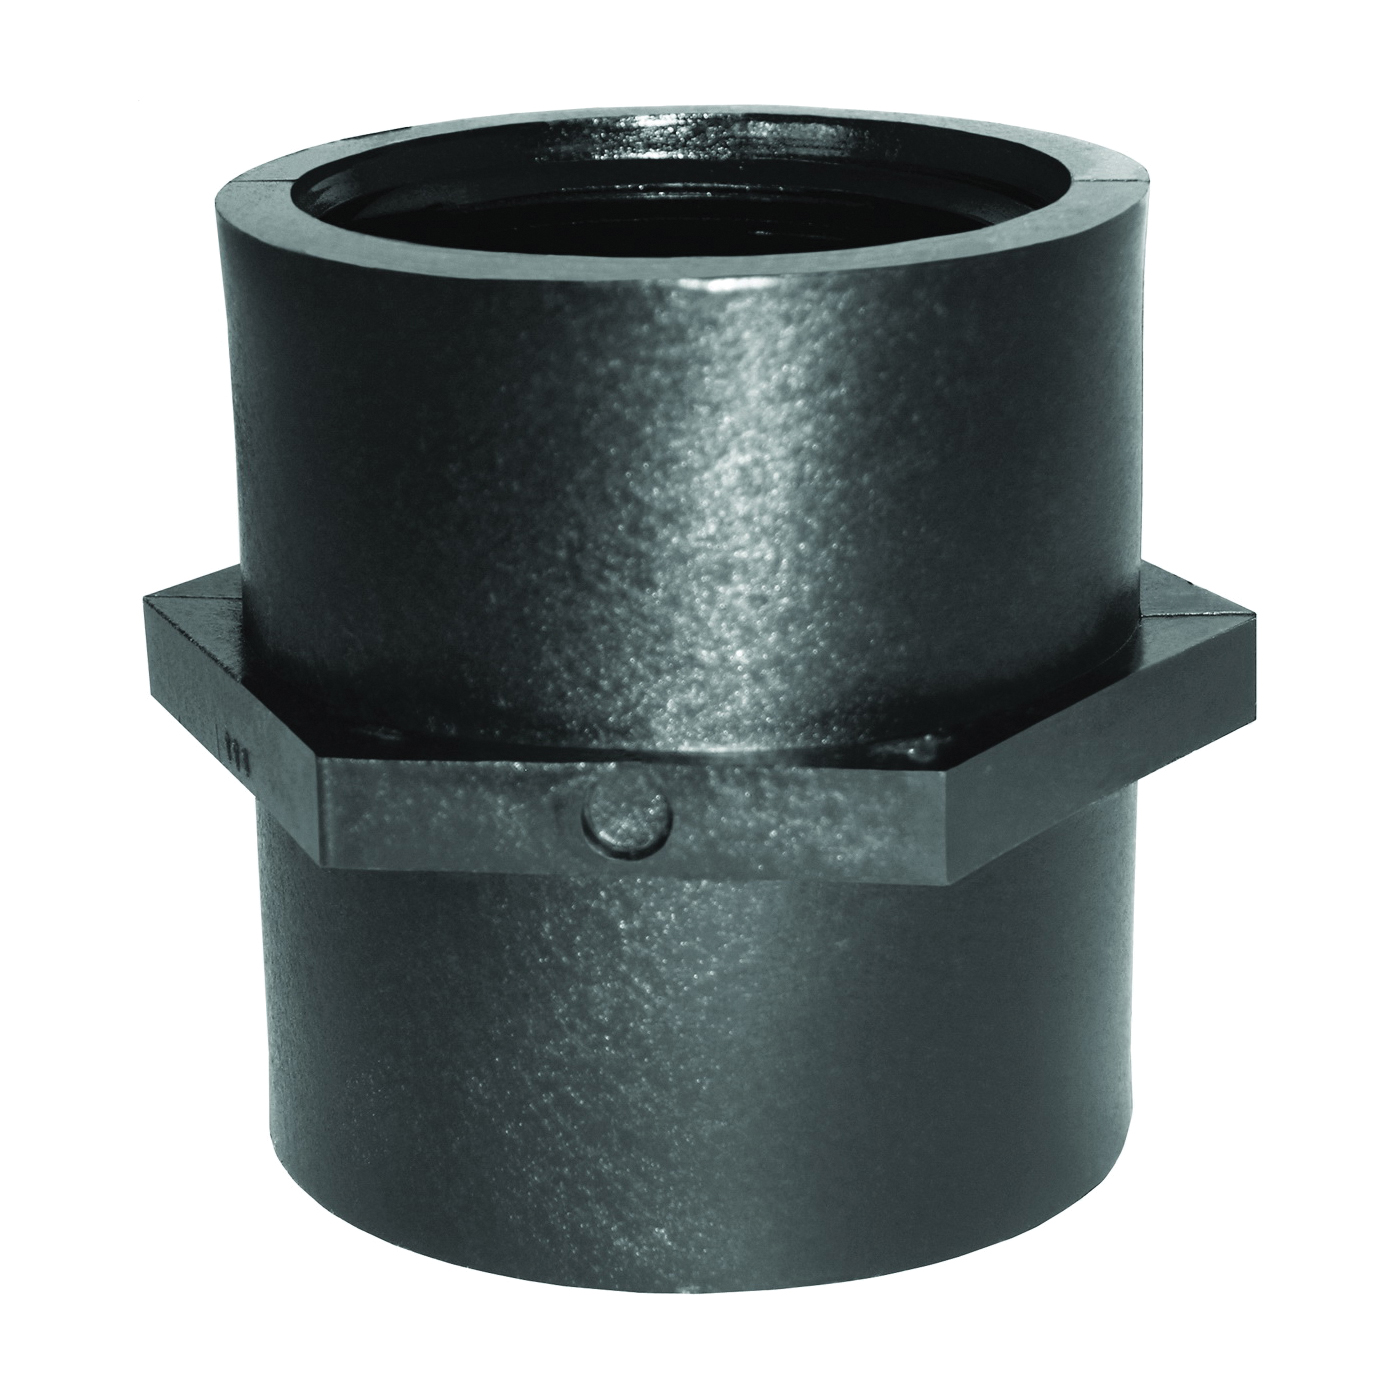 Picture of GREEN LEAF FTC 12 P Pipe Coupler, 1/2 in, Female NPT